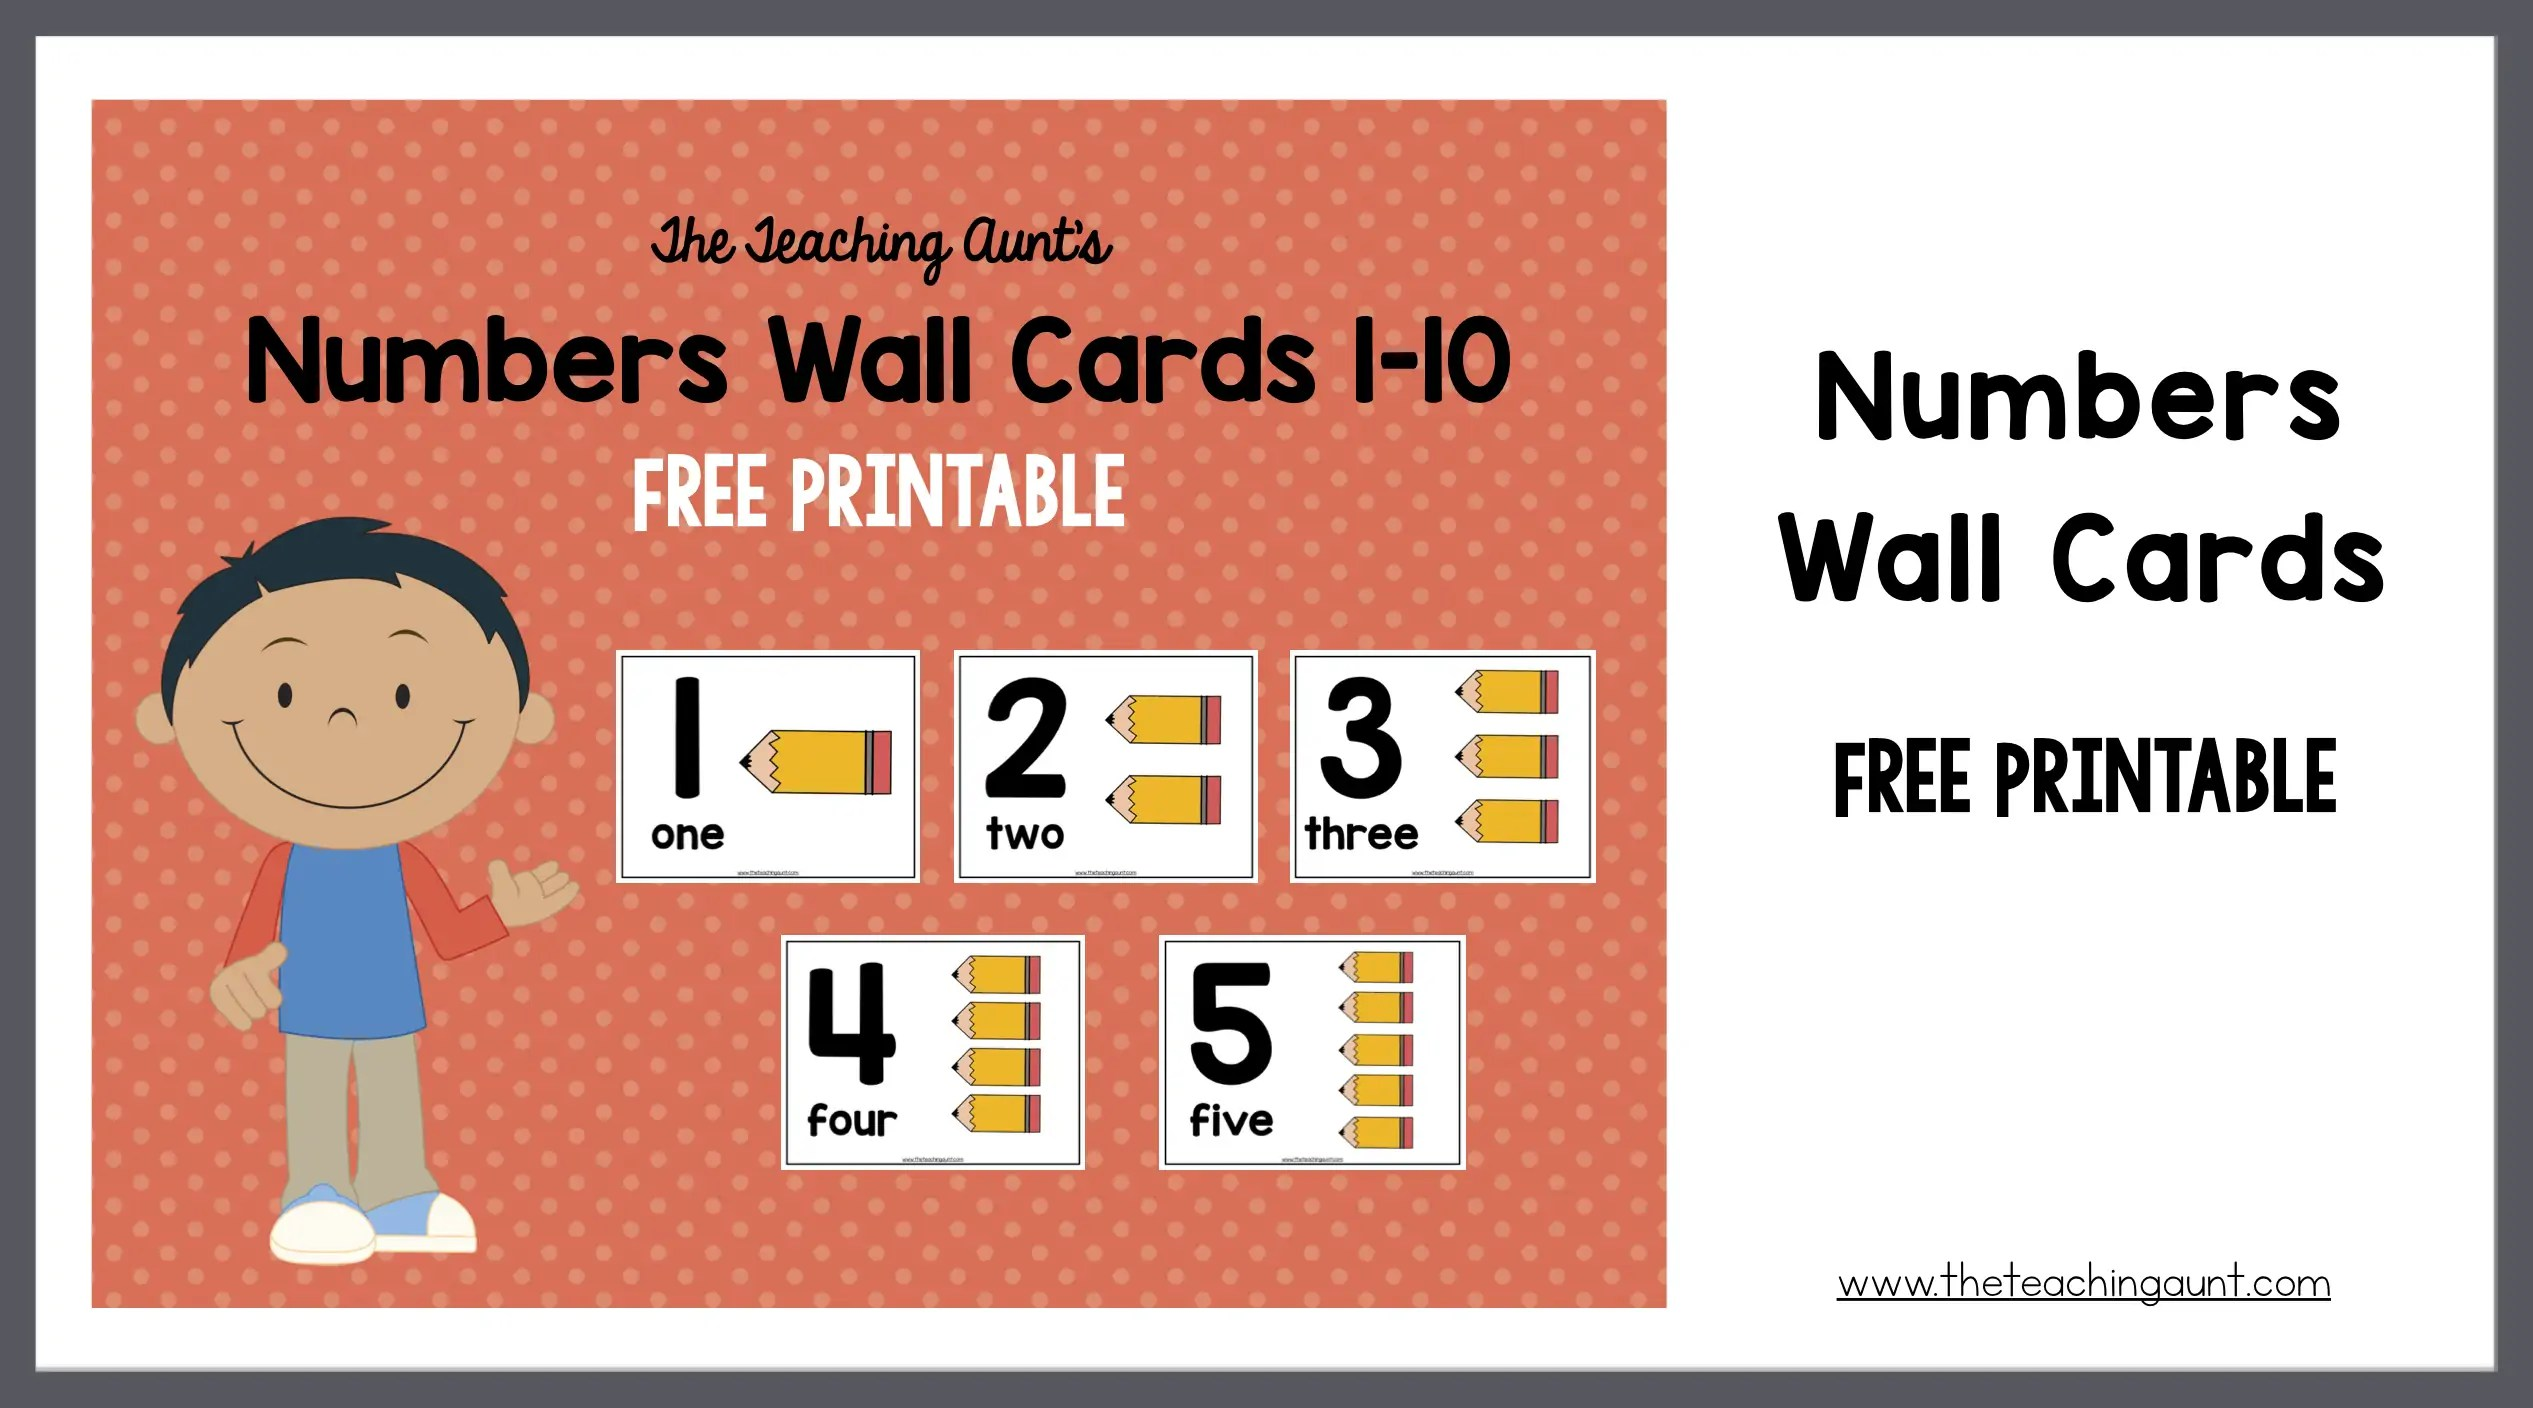 picture regarding Free Printable Numbers 1 10 identified as Selection Wall Playing cards for Preschoolers - The Coaching Aunt